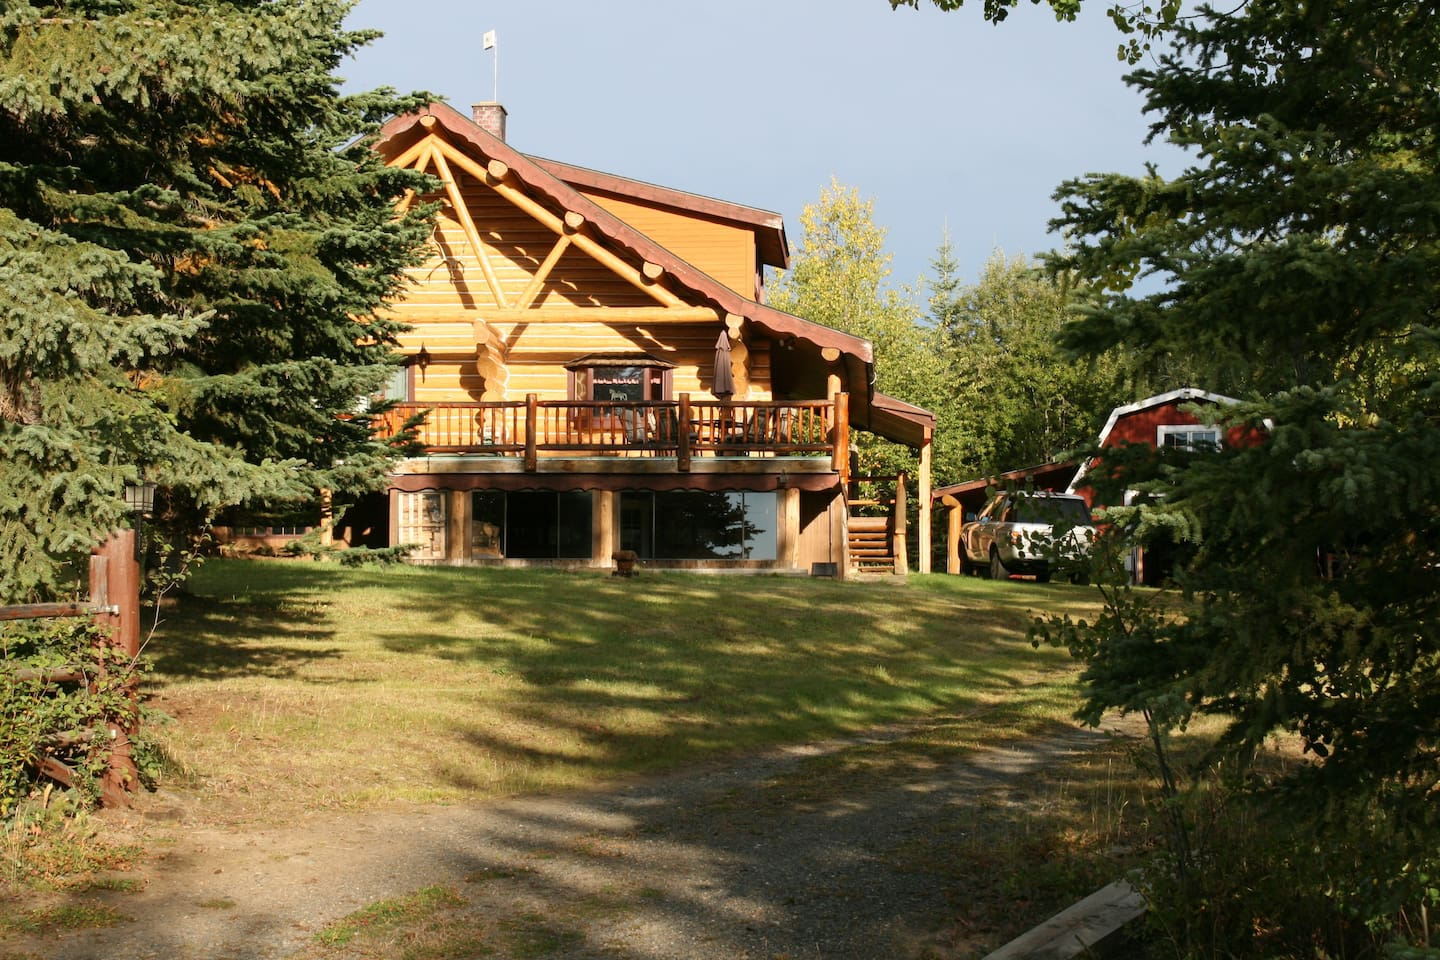 Great family home on 2 acres. Ideal for family reunions and special holidays. Moon Dance Bay Resort nearby for overflow.